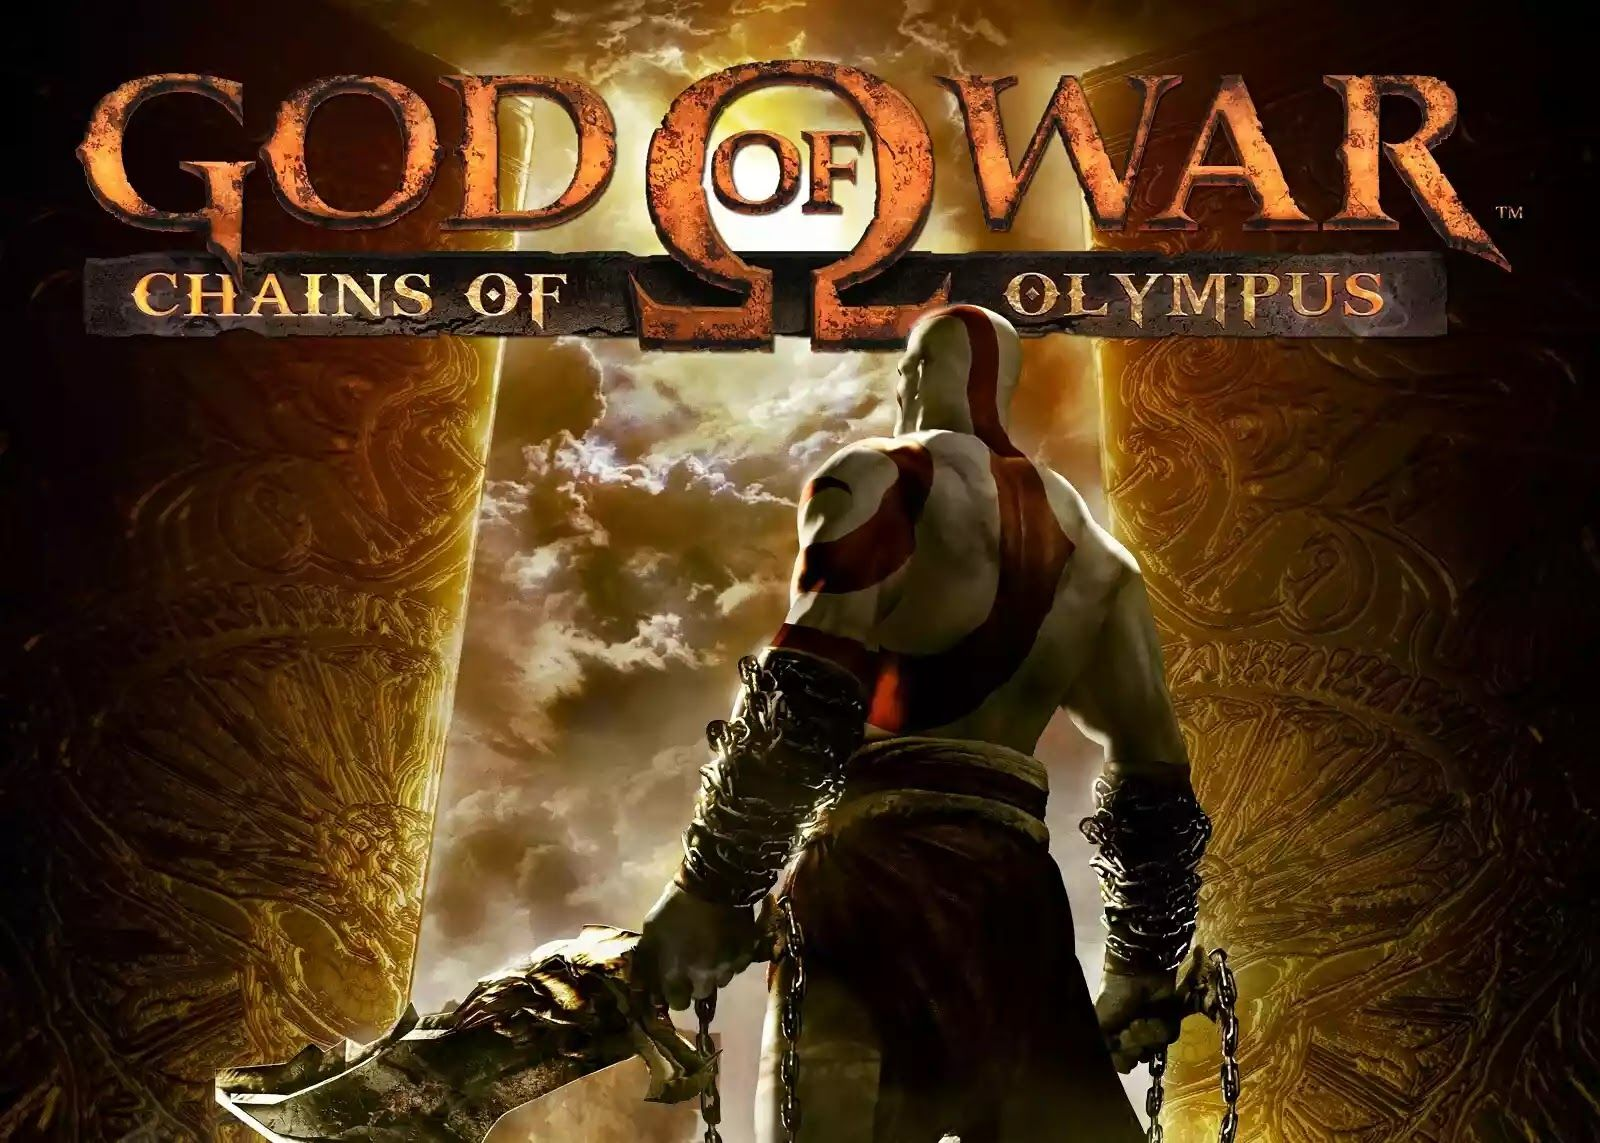 God of war chains of Olympus [85mb] super compressed